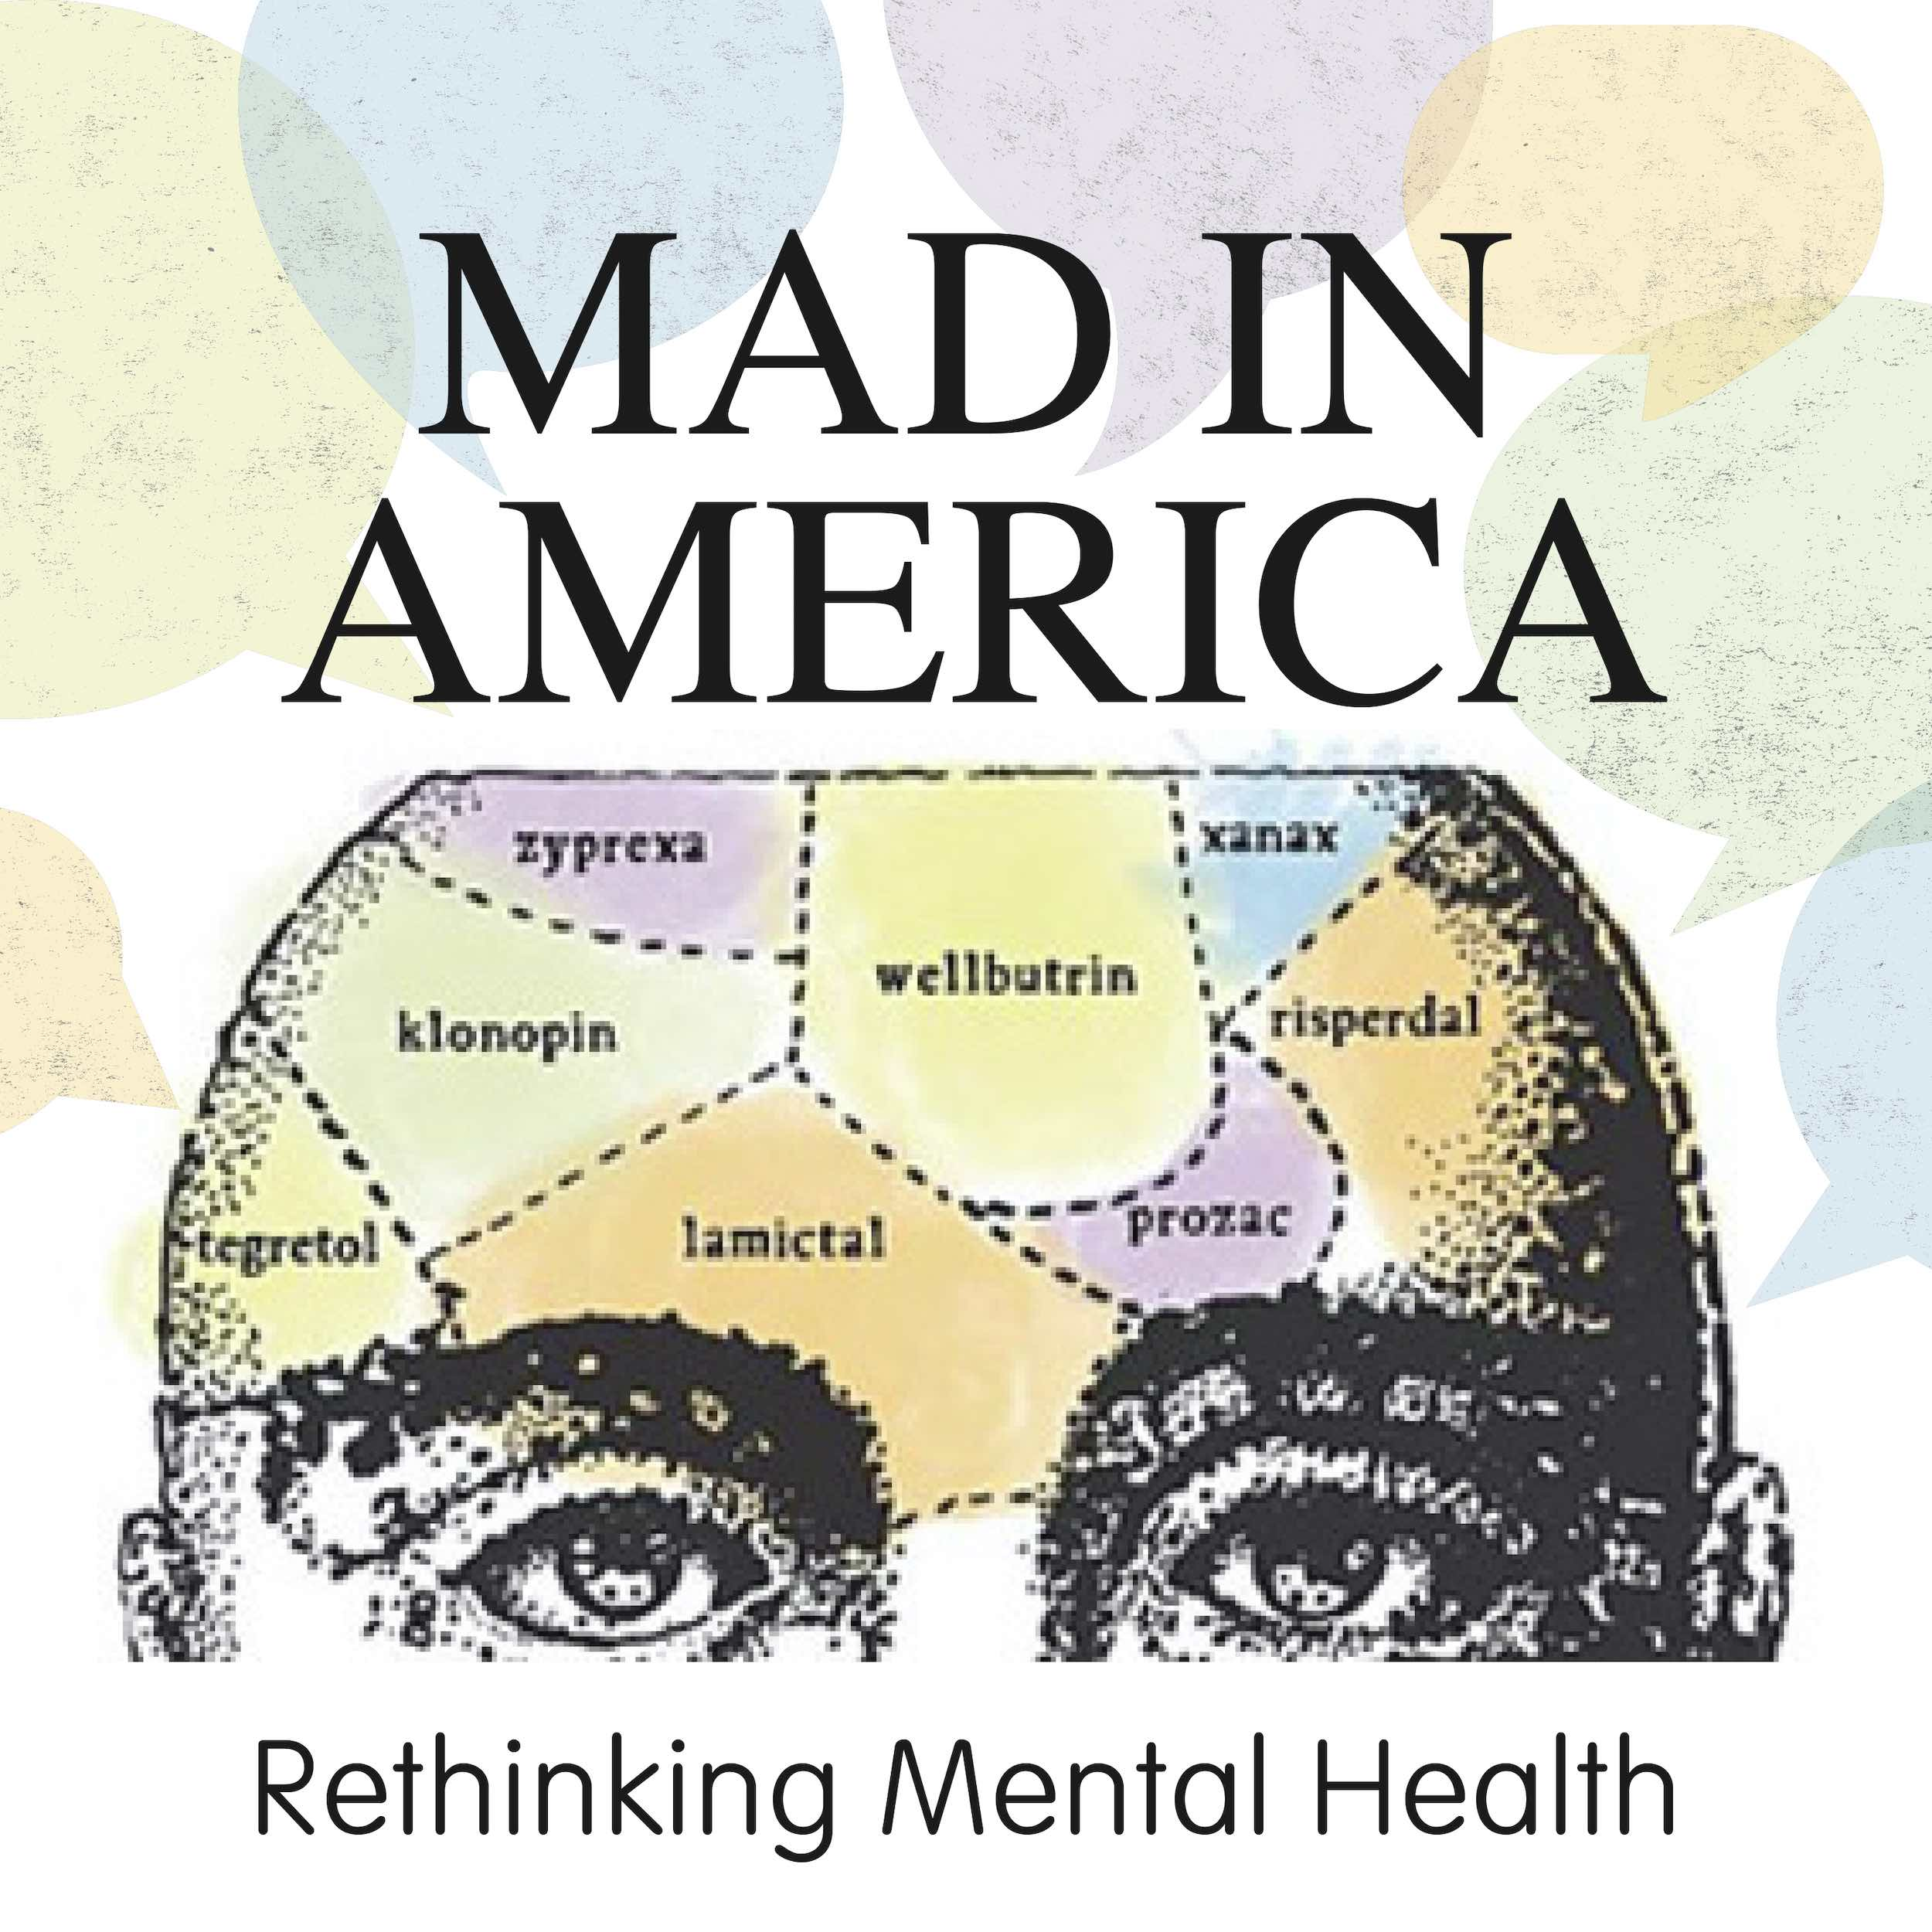 Mad in America: Rethinking Mental Health - Johann Hari - Lost Connections: Uncovering the Real causes of Depression and the Unexpected Solutions